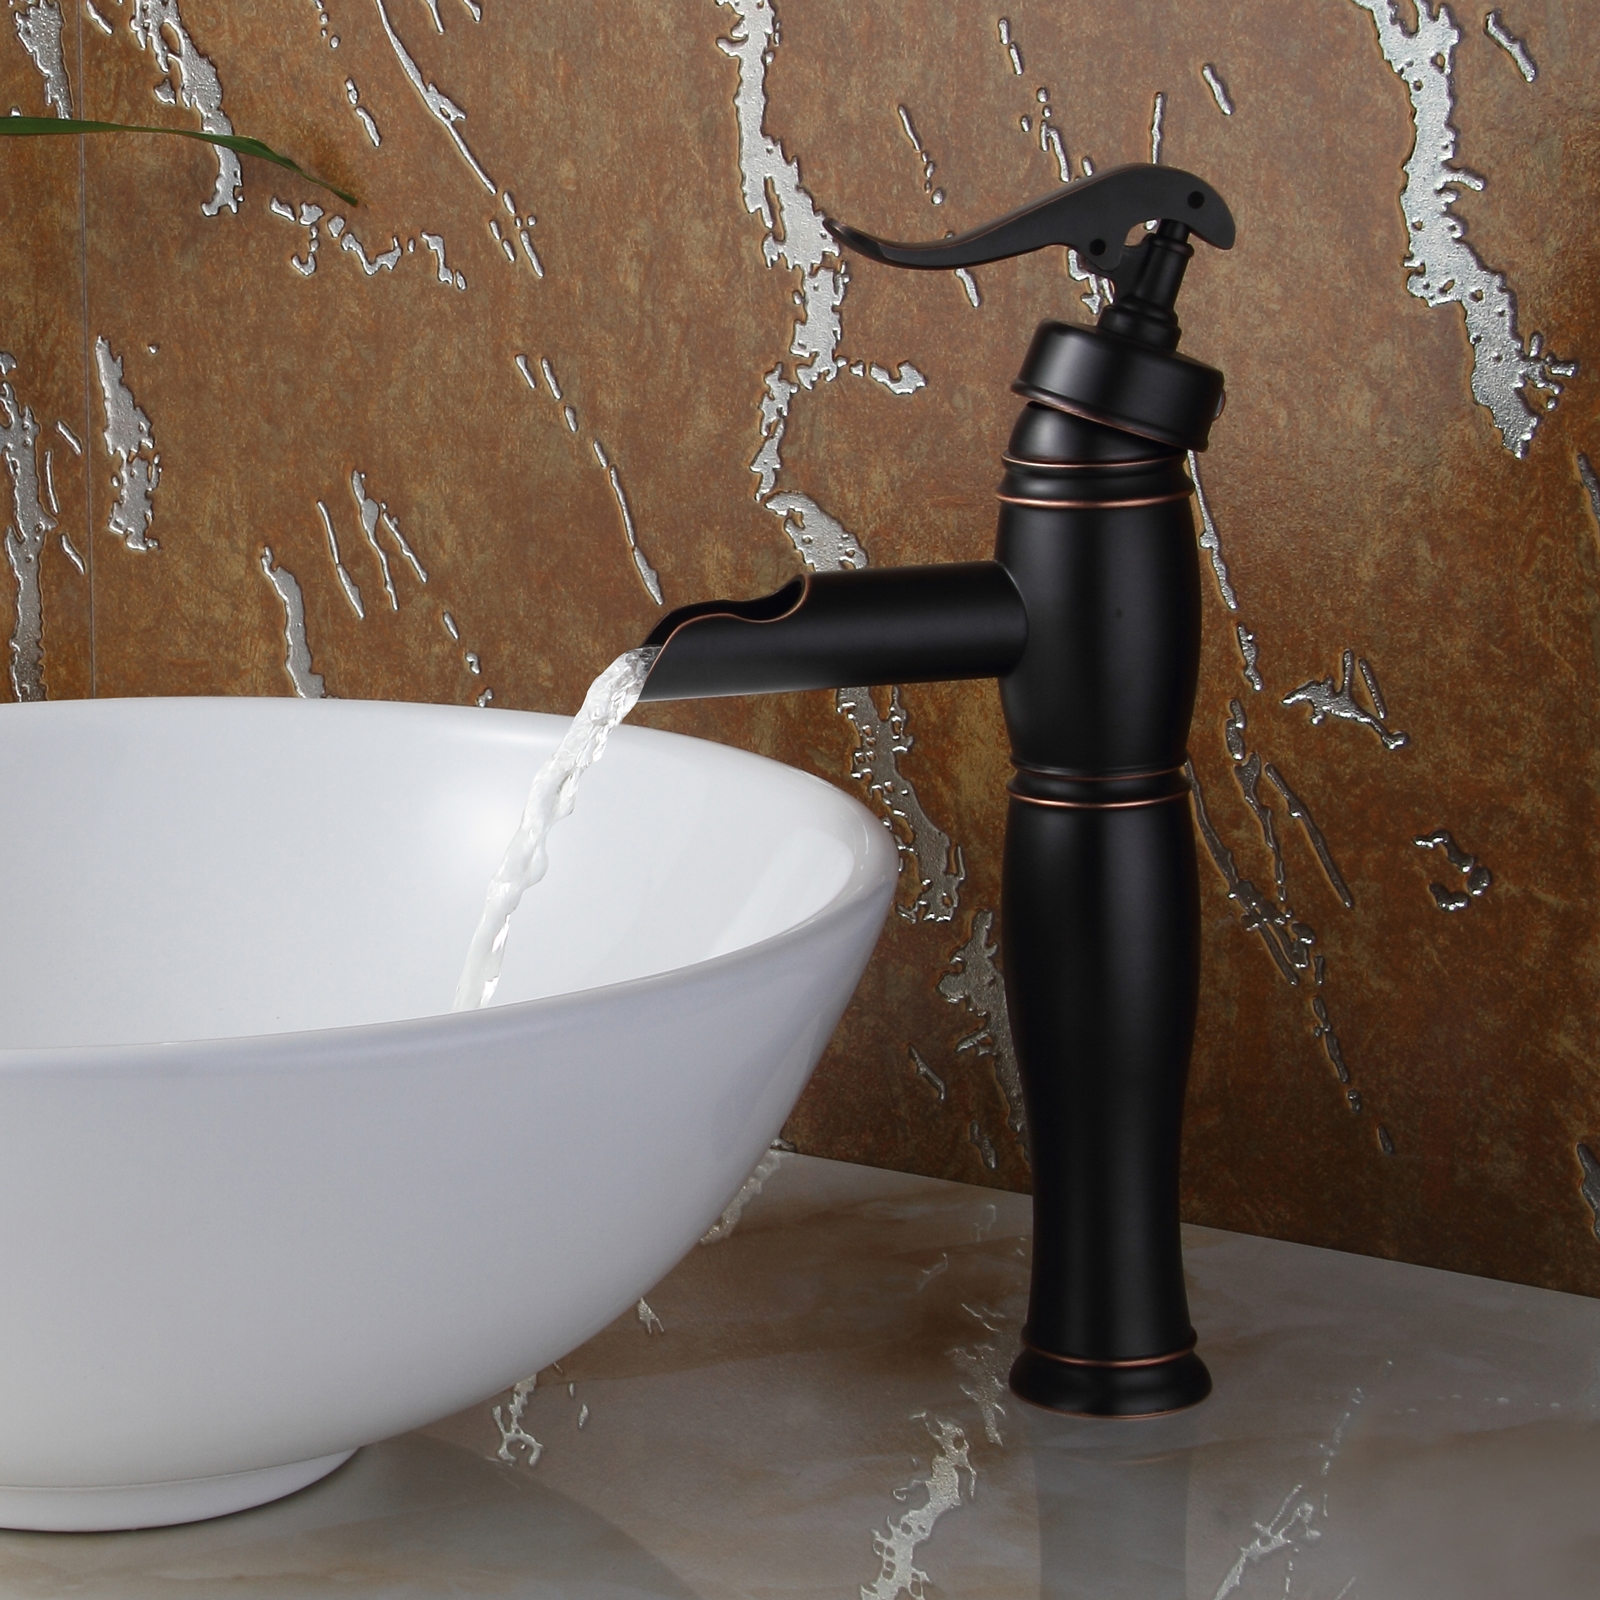 Ideas, faucets for vessel sinks bronze faucets for vessel sinks bronze bathroom faucets elitehomeproducts 1600 x 1600  .